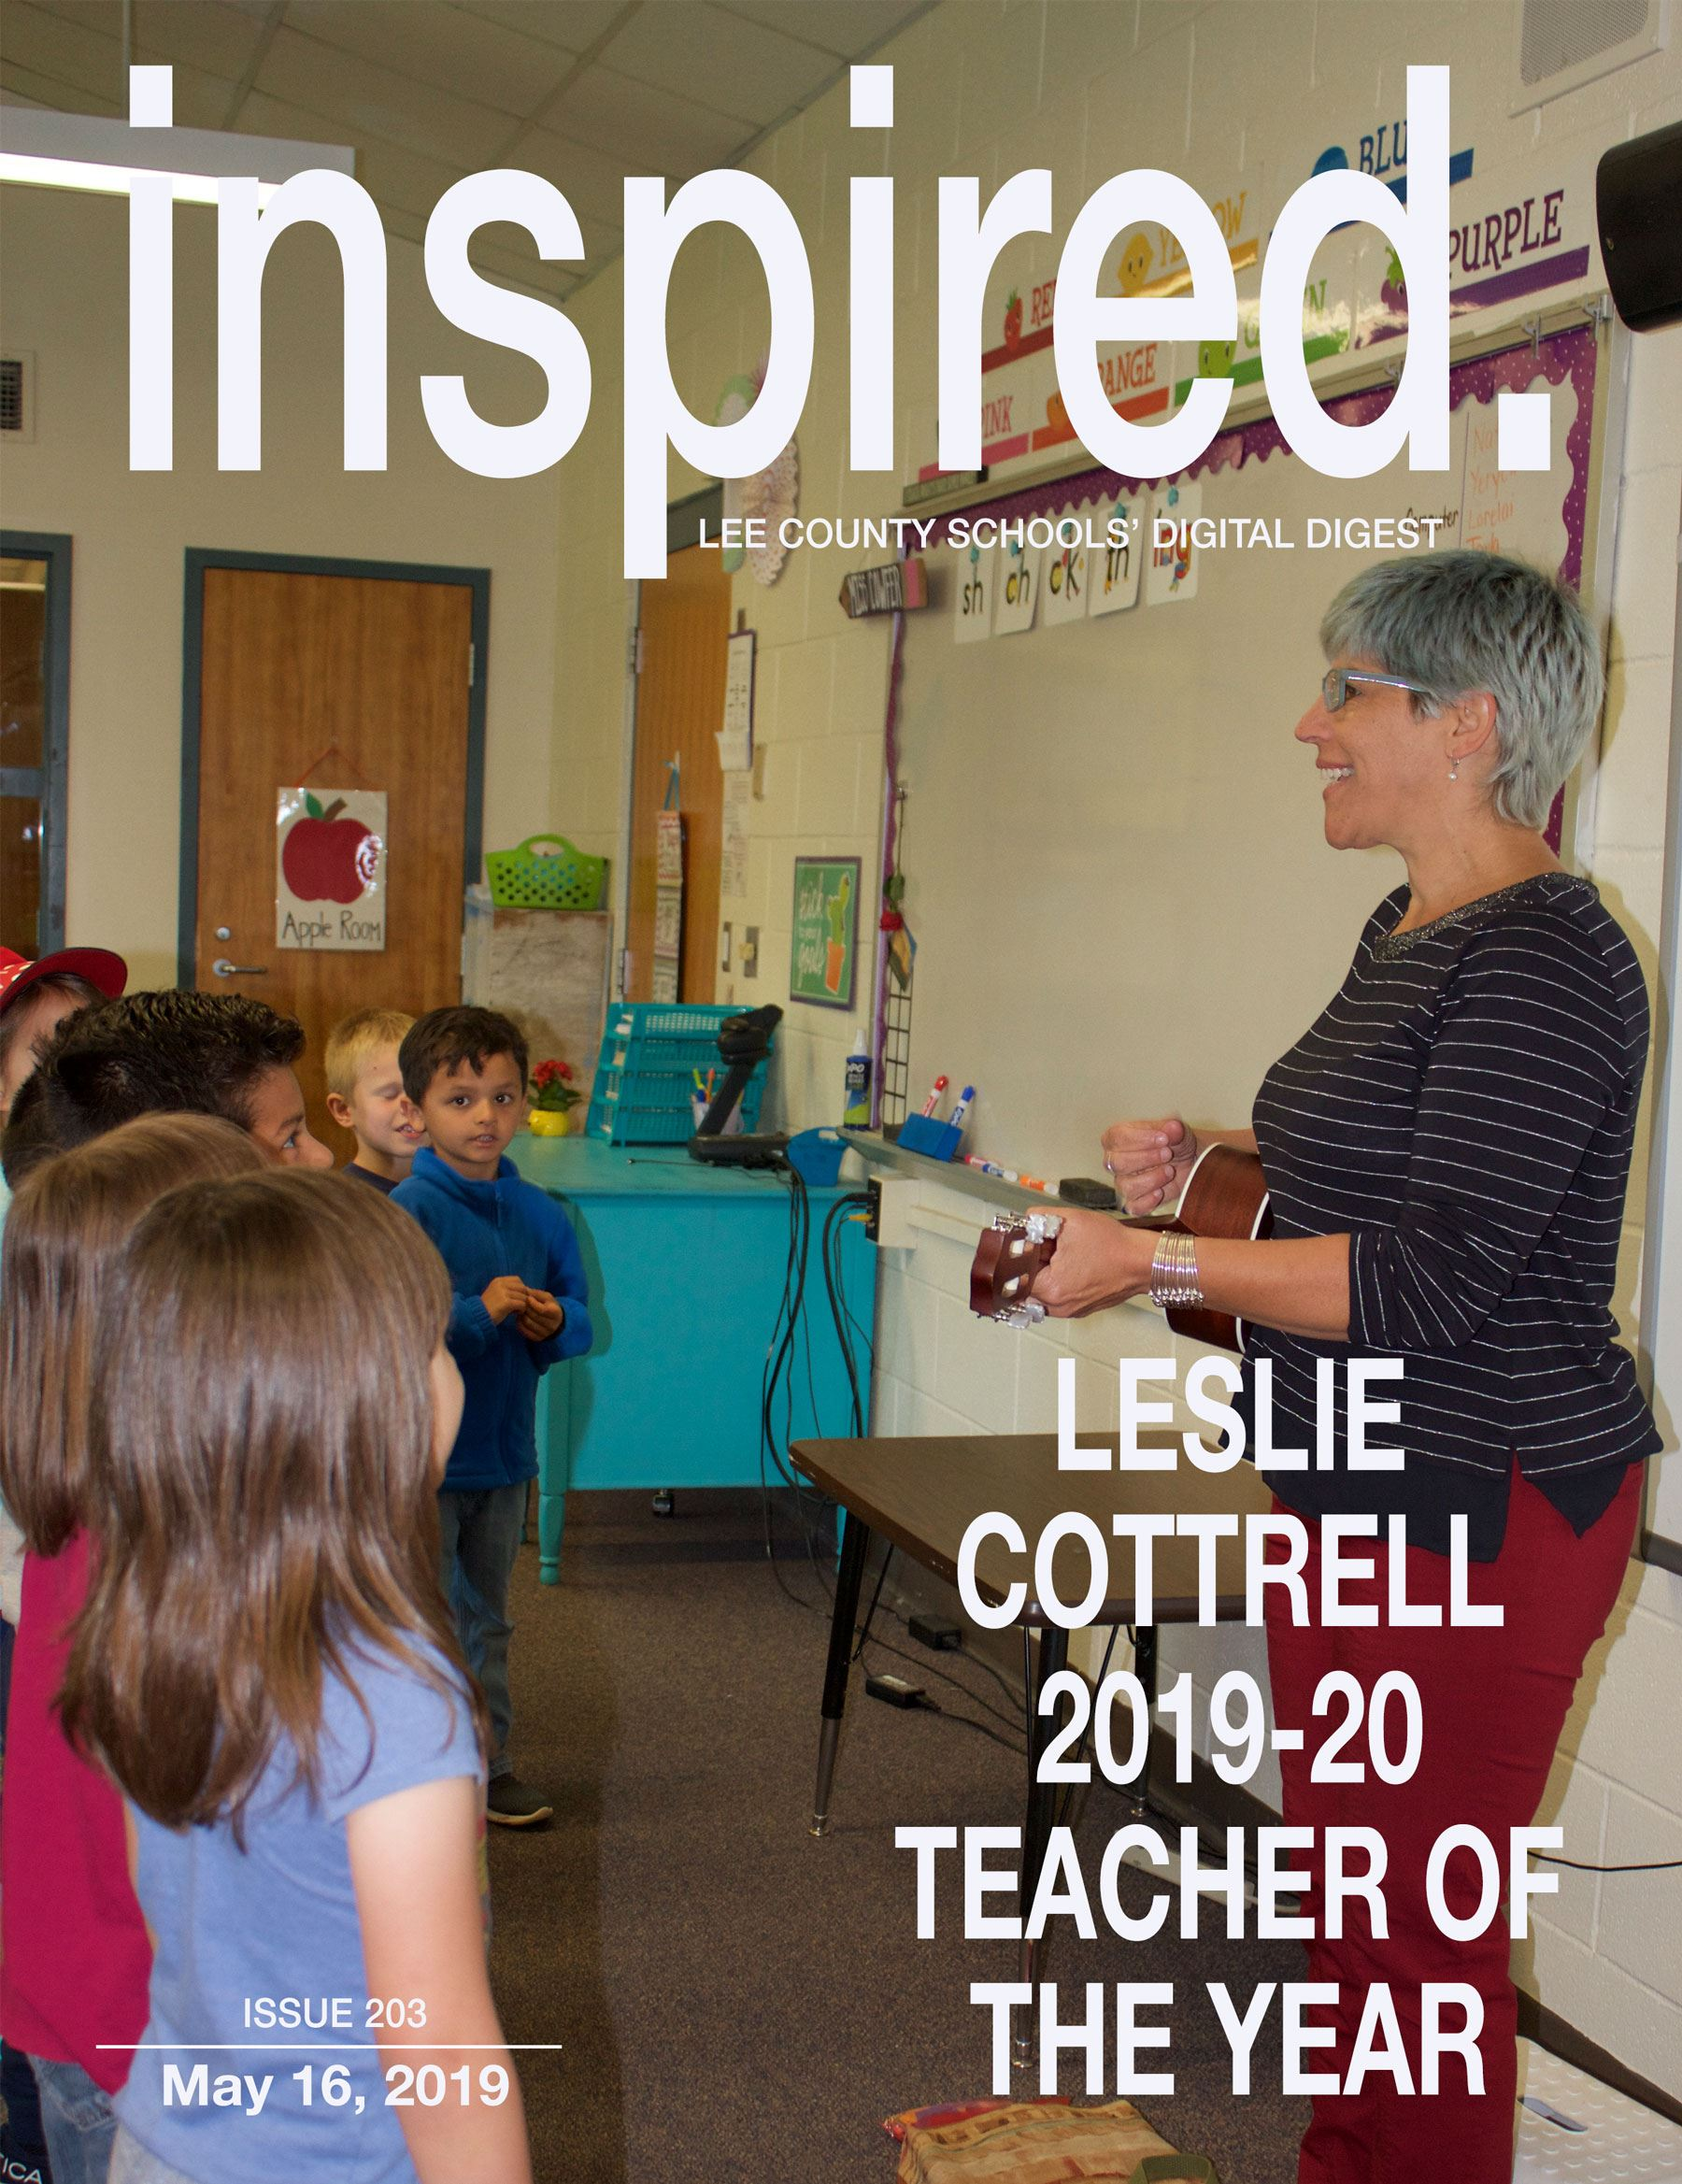 INSPIRED. Leslie Cottrell, 2019-20 Teacher of the Year